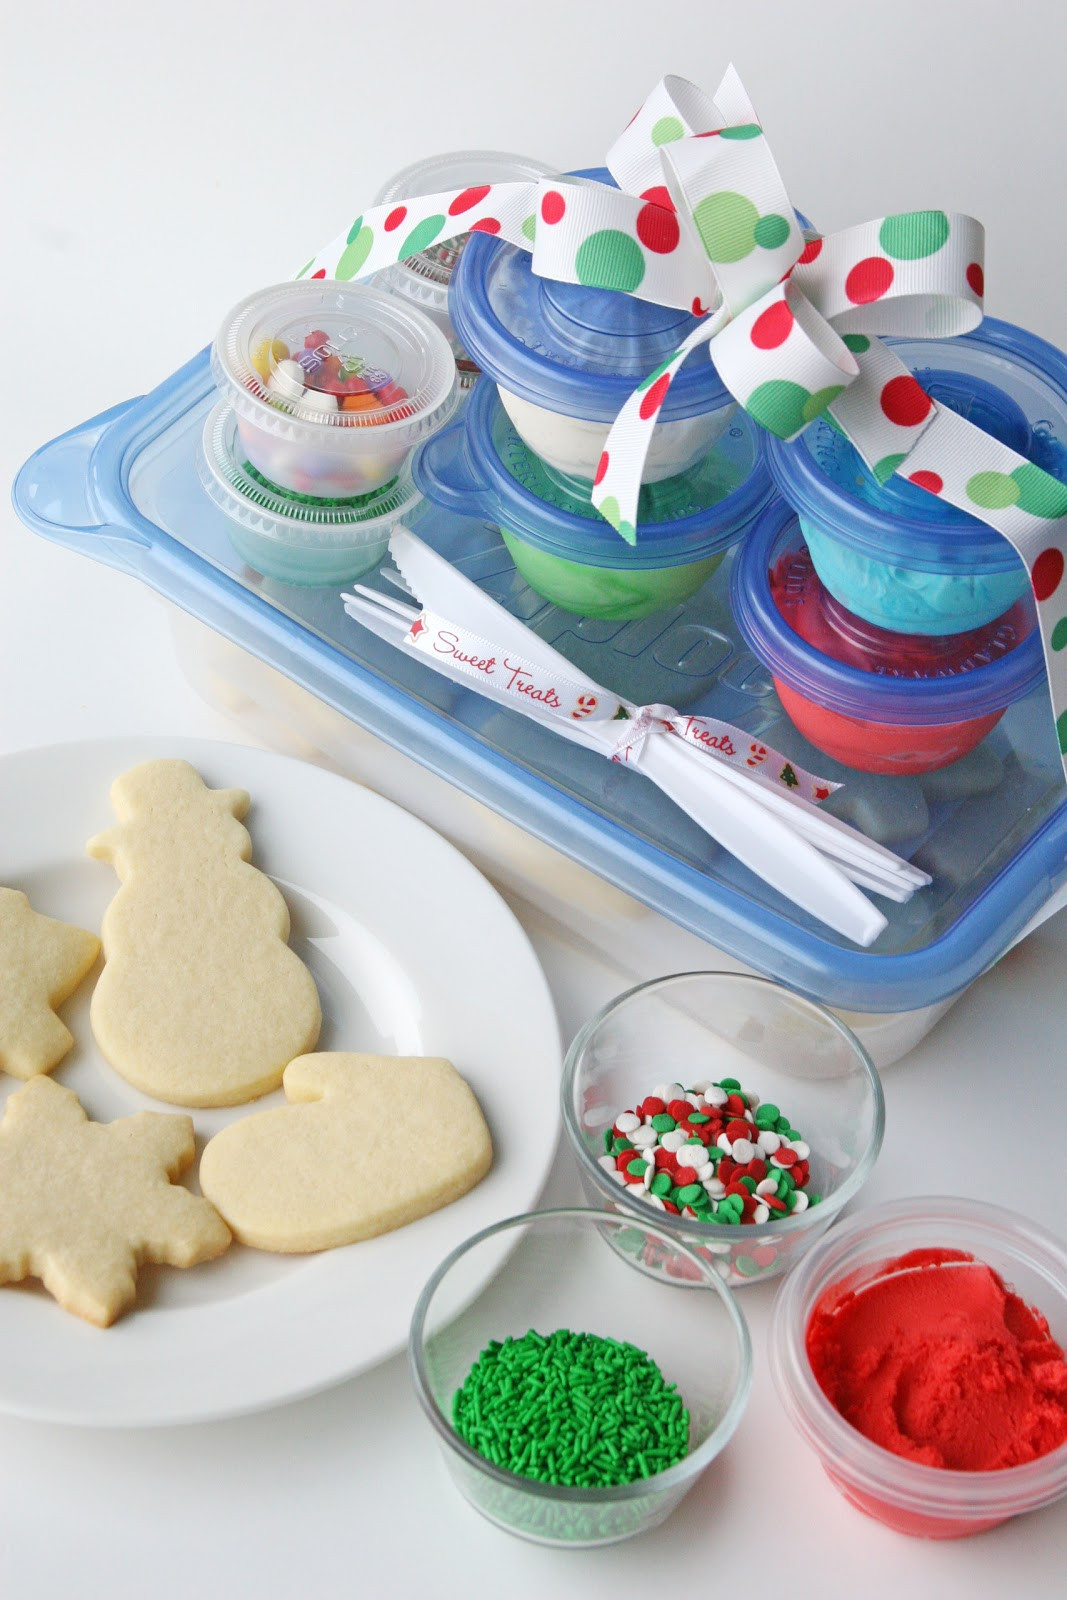 Christmas Cookies Decorating Kit  Cookie Decorating Kits for Kids and Easy Butter Frosting